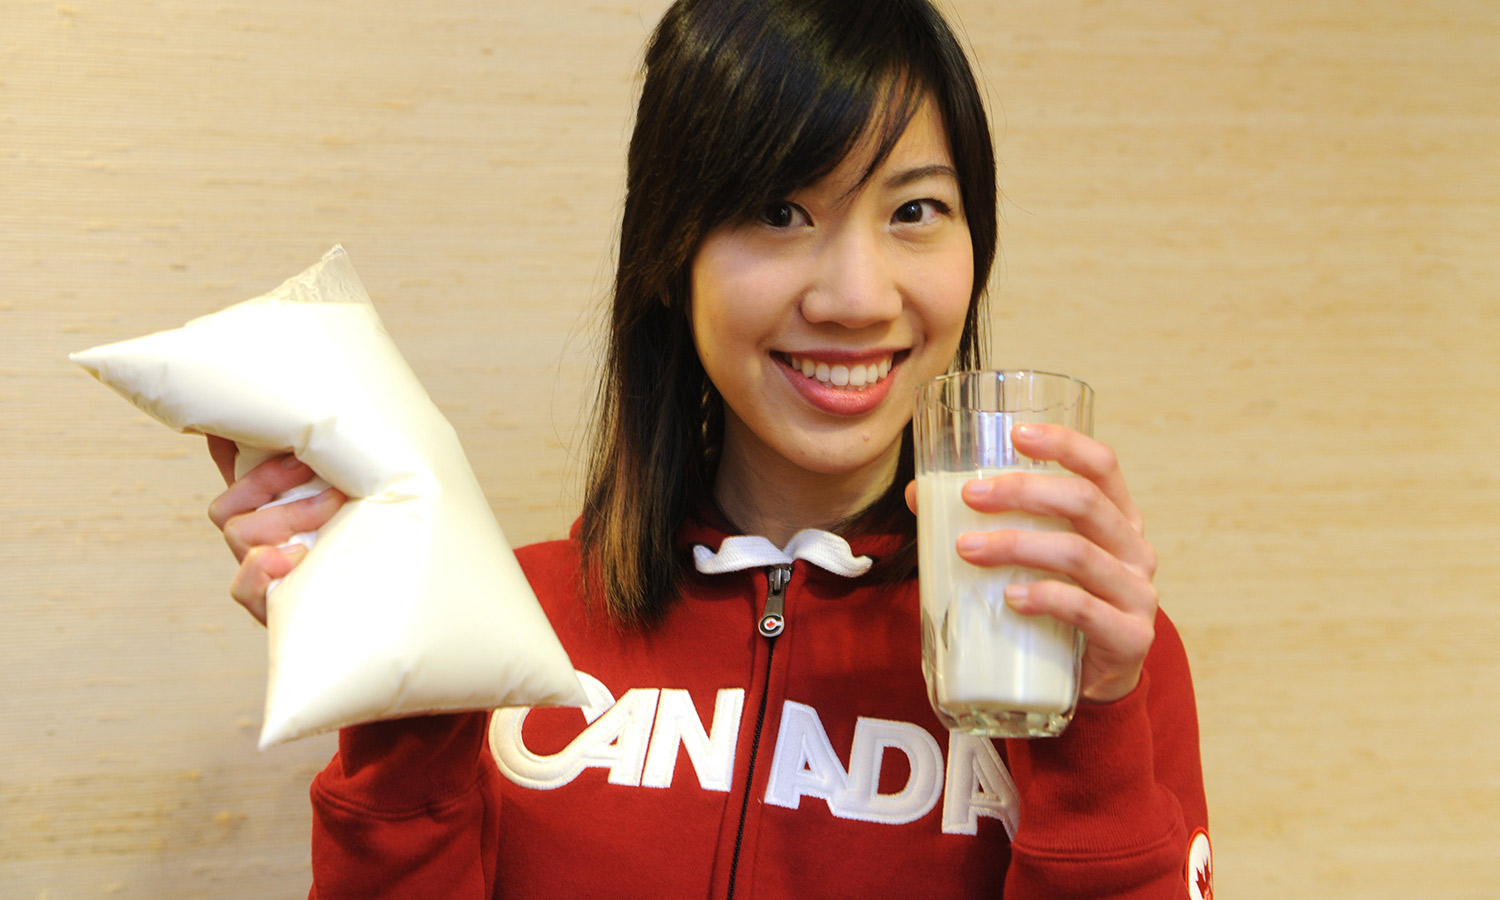 EC: Why Do Some Countries Sell Milk in Bags?